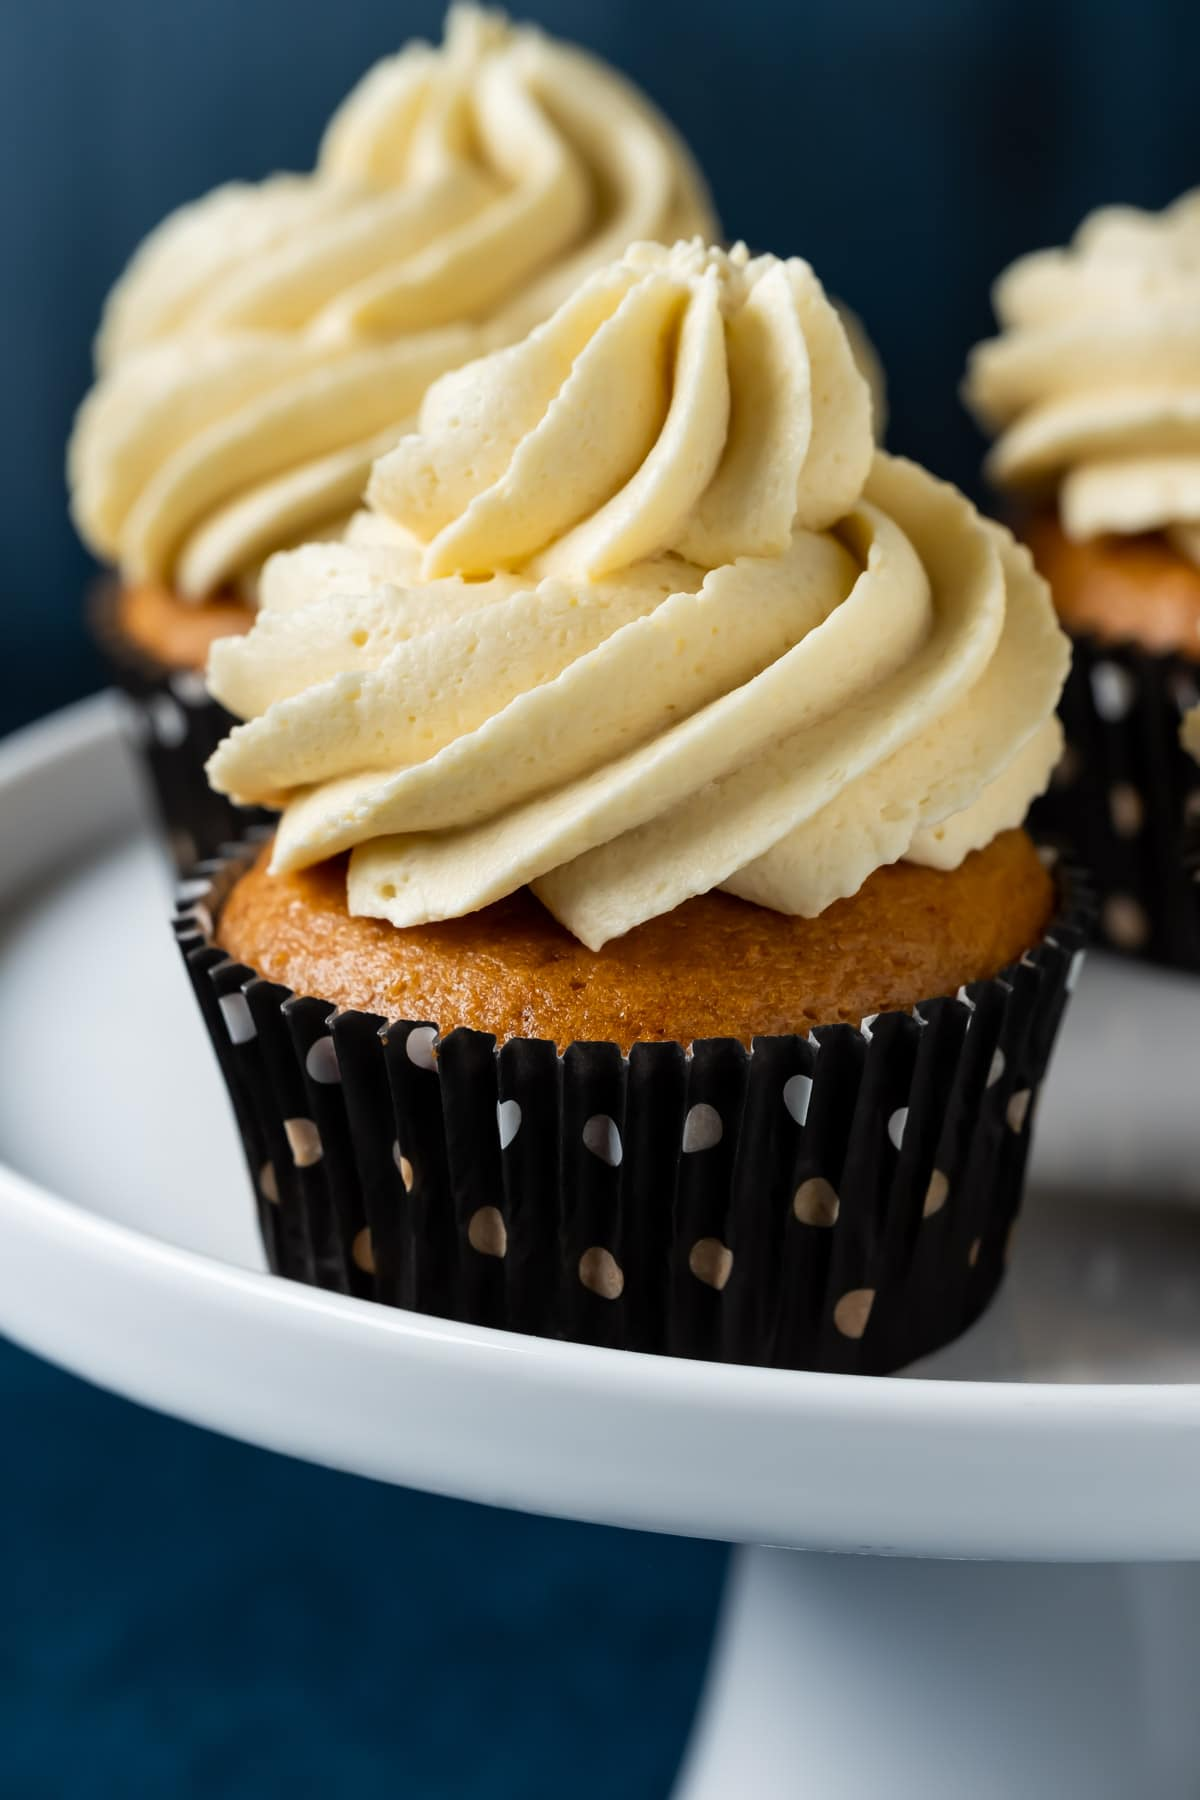 Eggless vanilla cupcakes on a white cake stand.